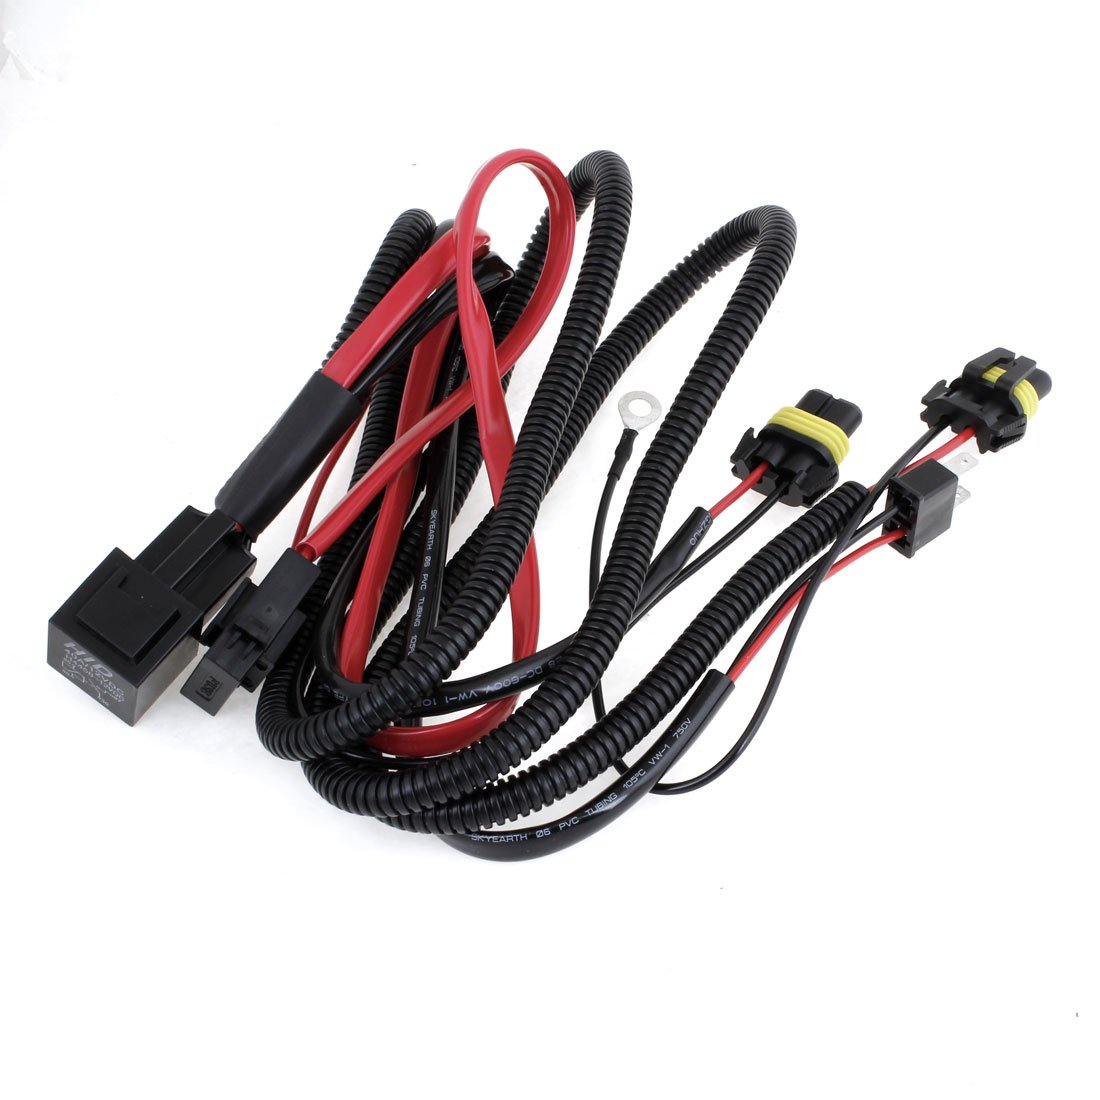 Sourcingmap Xenon Hid Conversion Kit Relay Wiring Harness Cord Upgrade Pack For H7 Car Motorbike